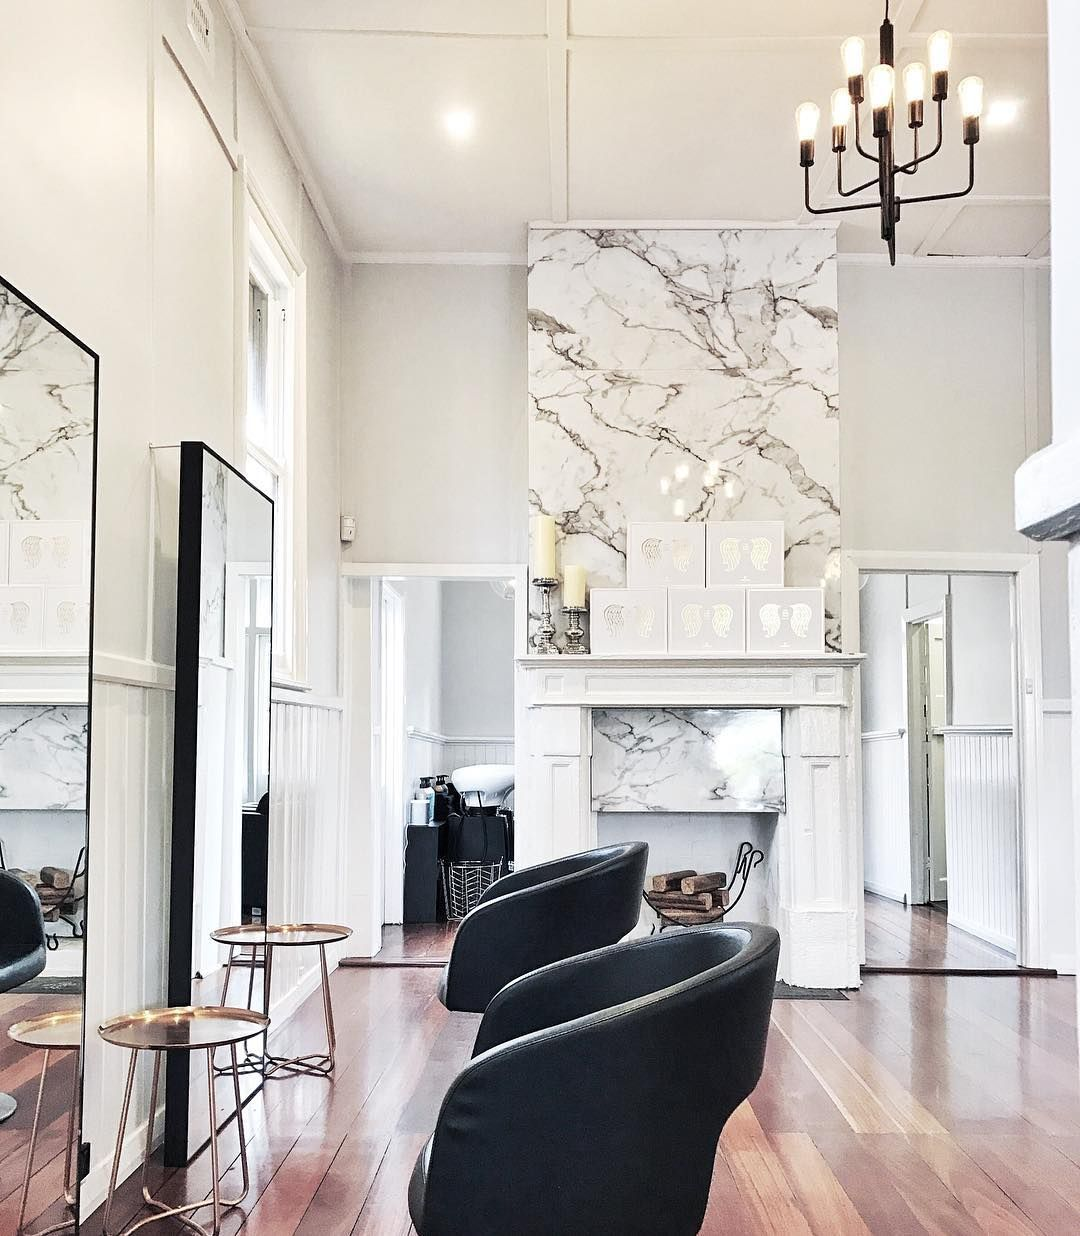 Fab new hair salon in Mosman Park! Love this marble mixed with the ...